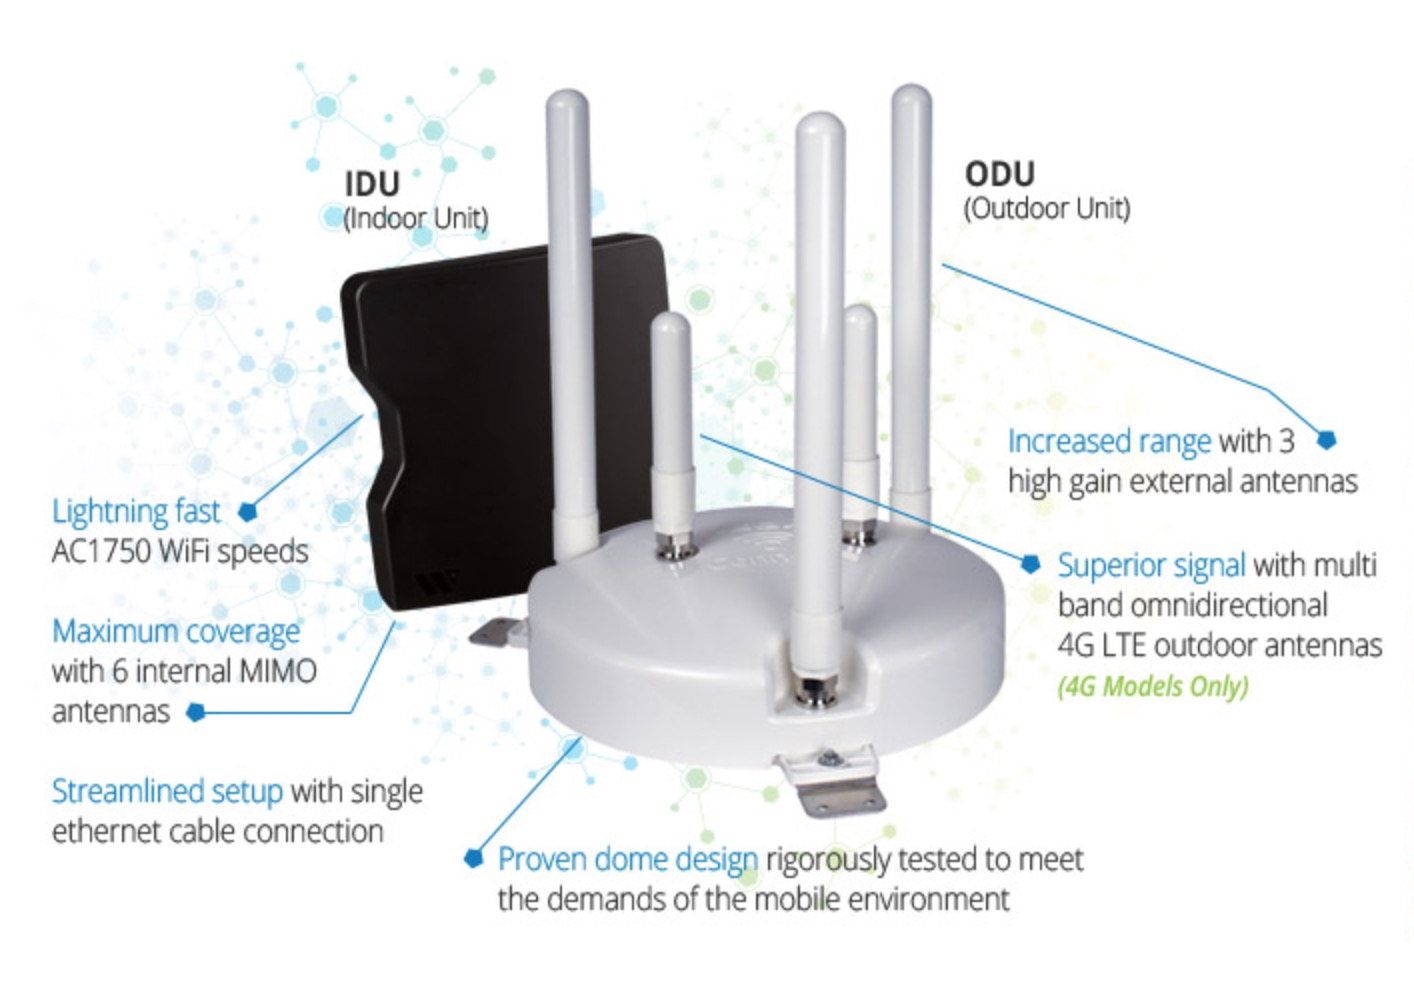 ConnecT 4G1 white and black plastic dome with three wifi and two cellular antennas